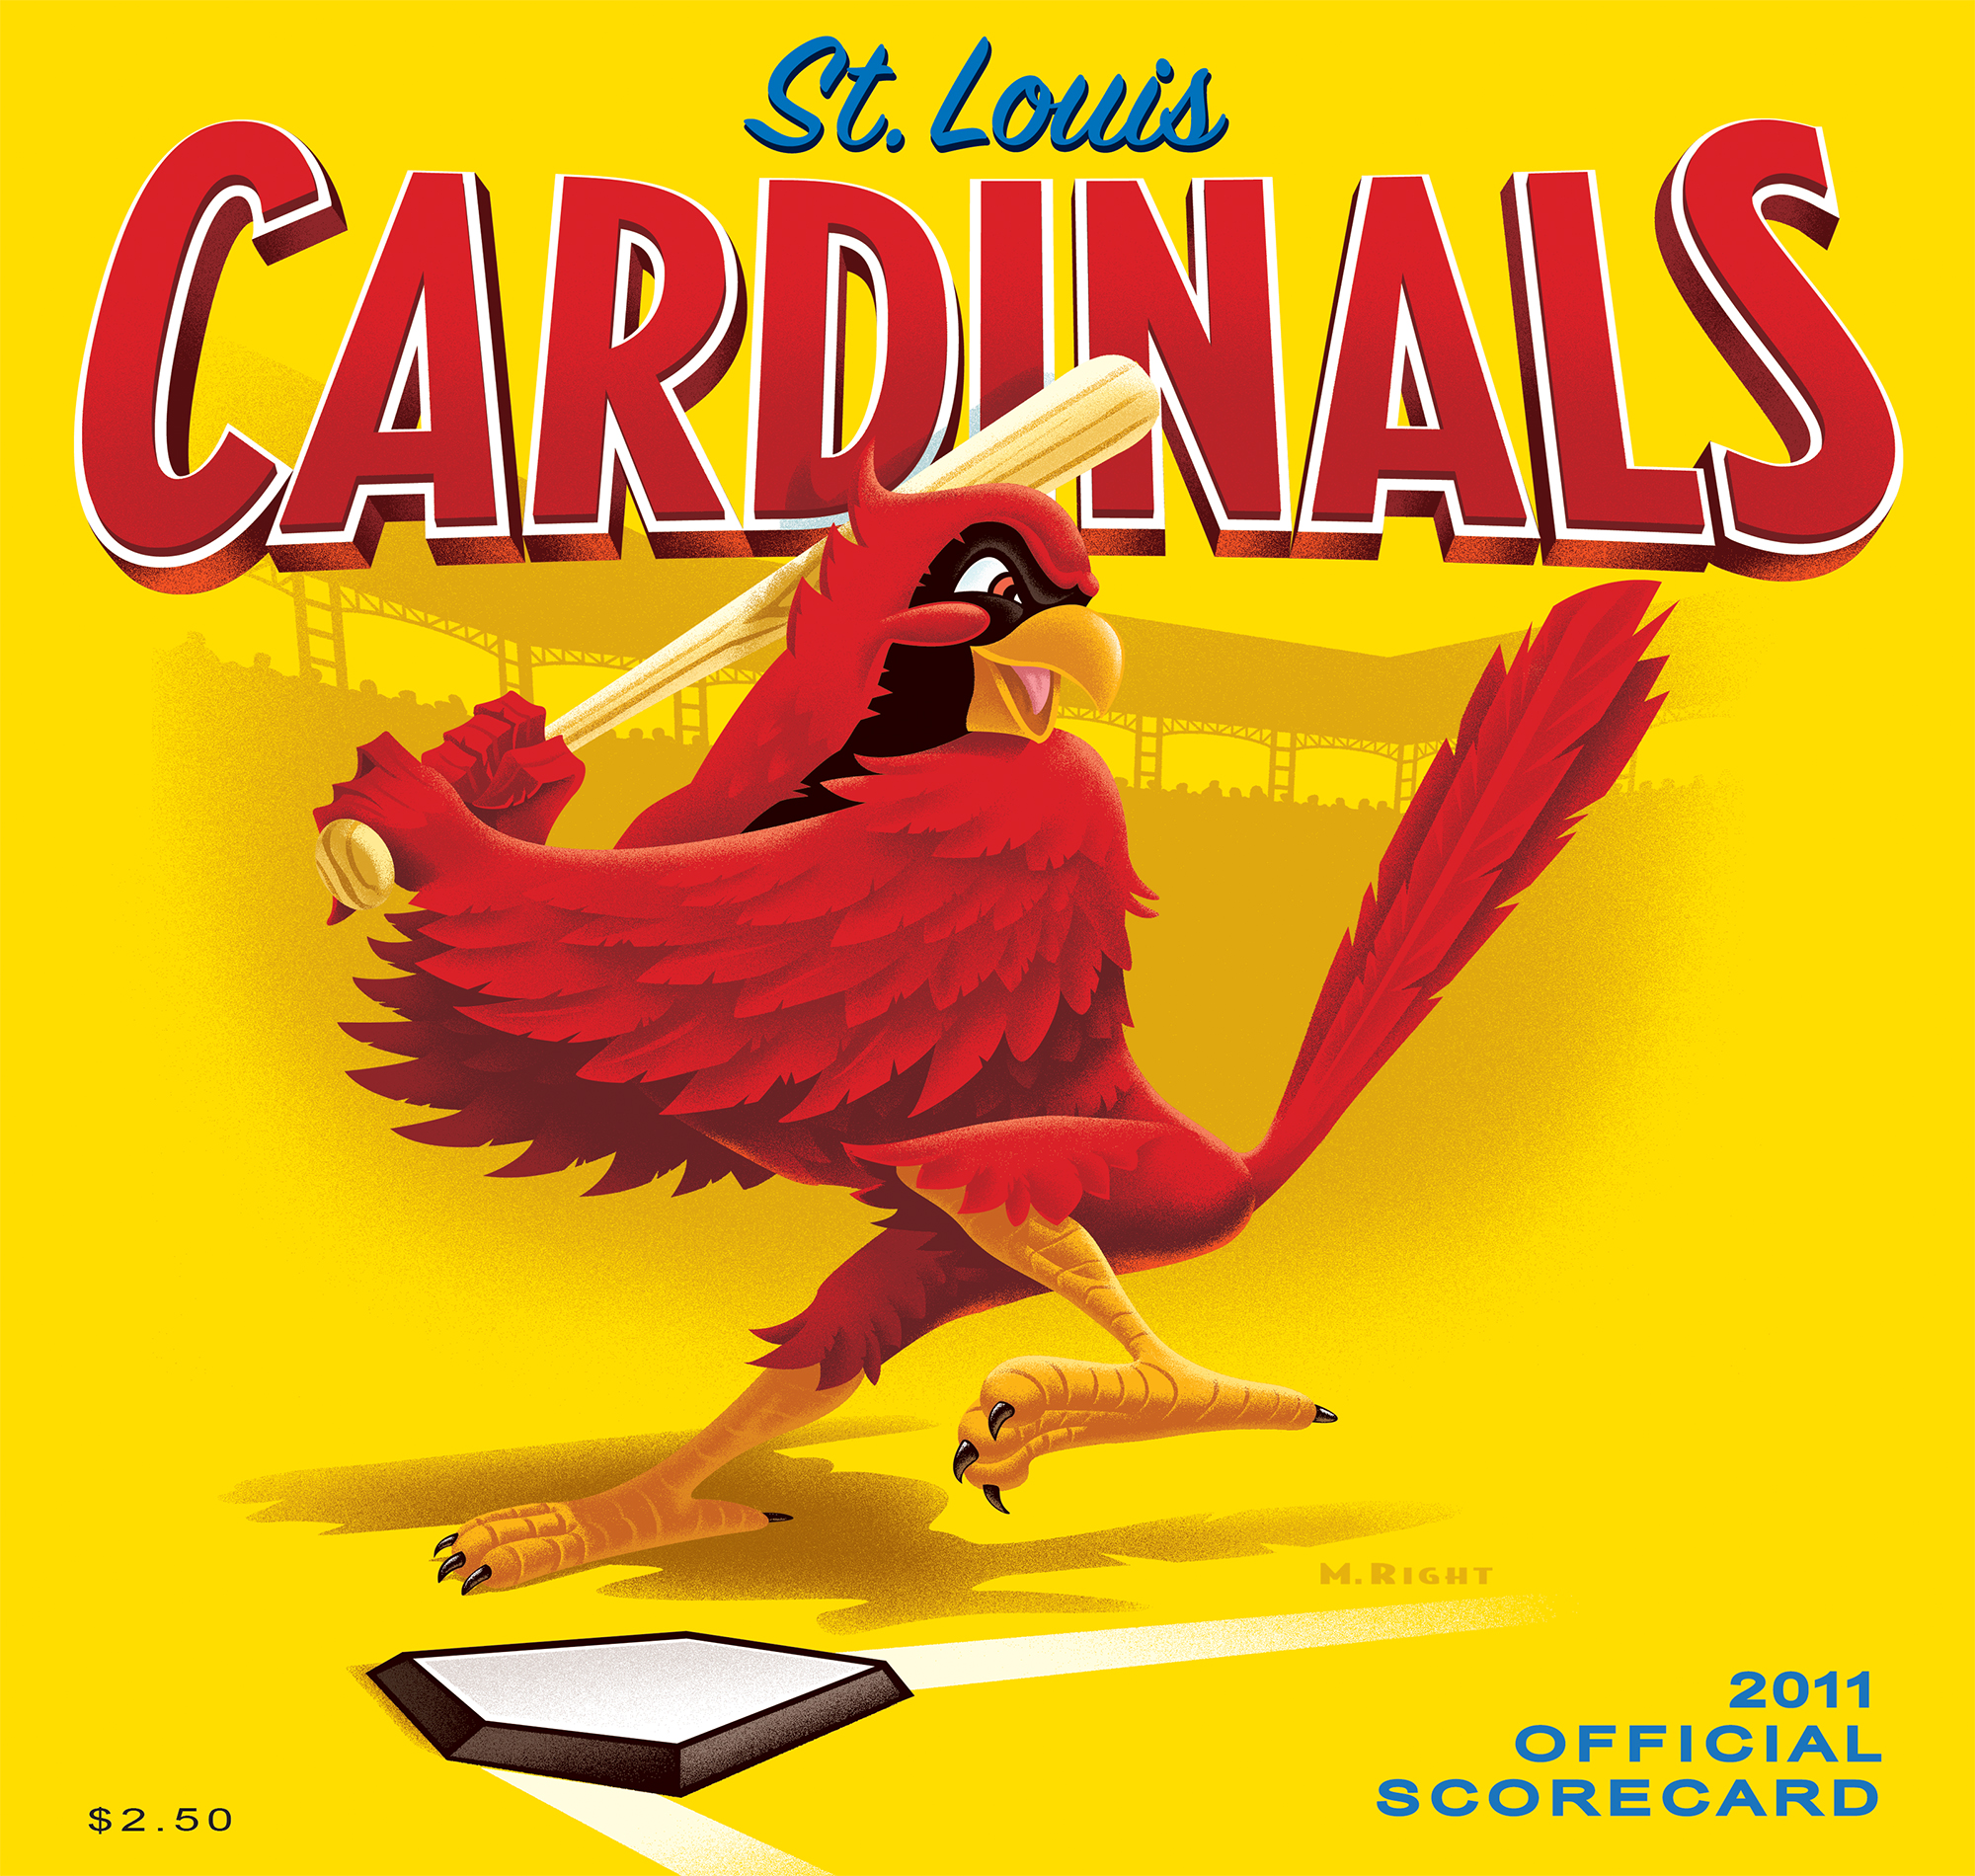 2011 Cardinals Official Scorecard